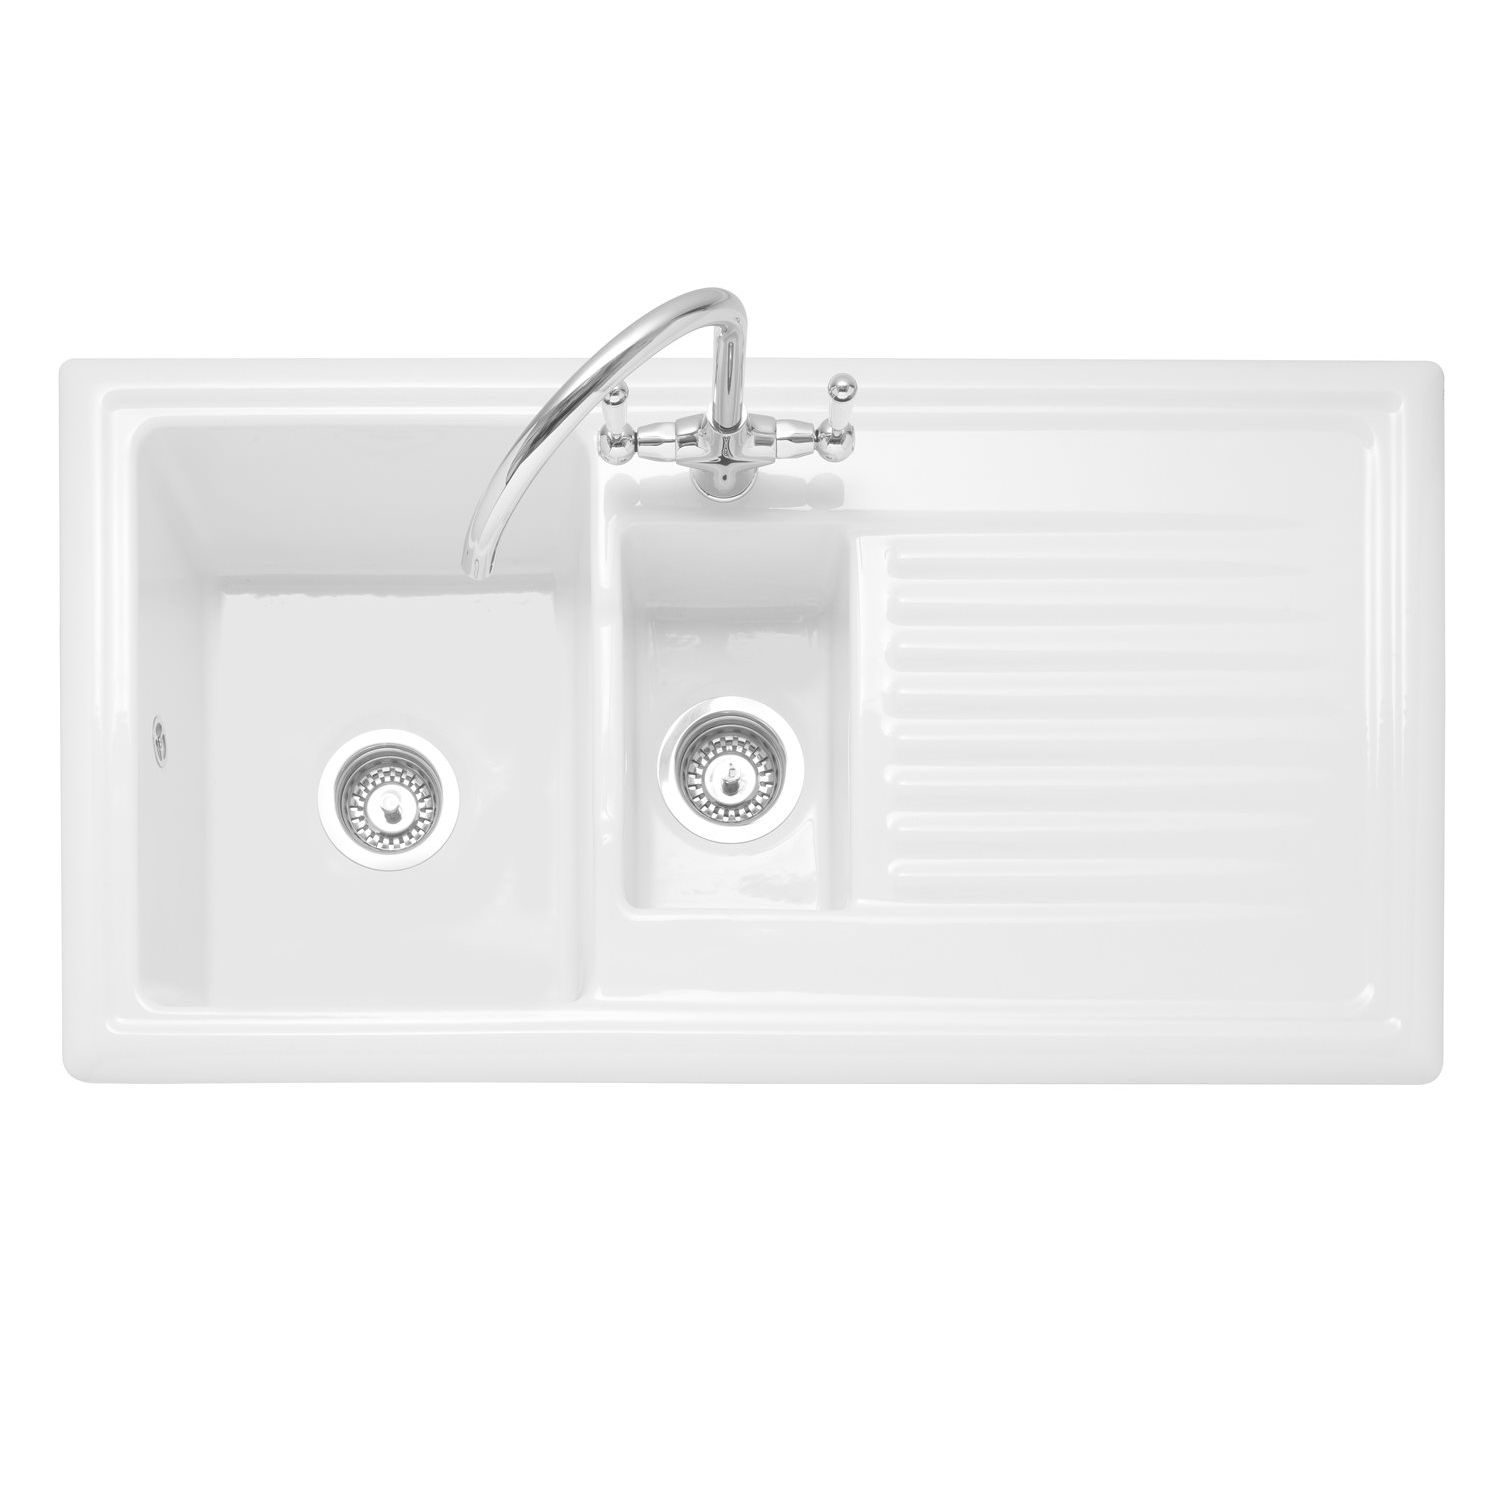 Caple WILTSHIRE 150 1.5 Bowl Inset Ceramic Kitchen Sink - Sinks ...